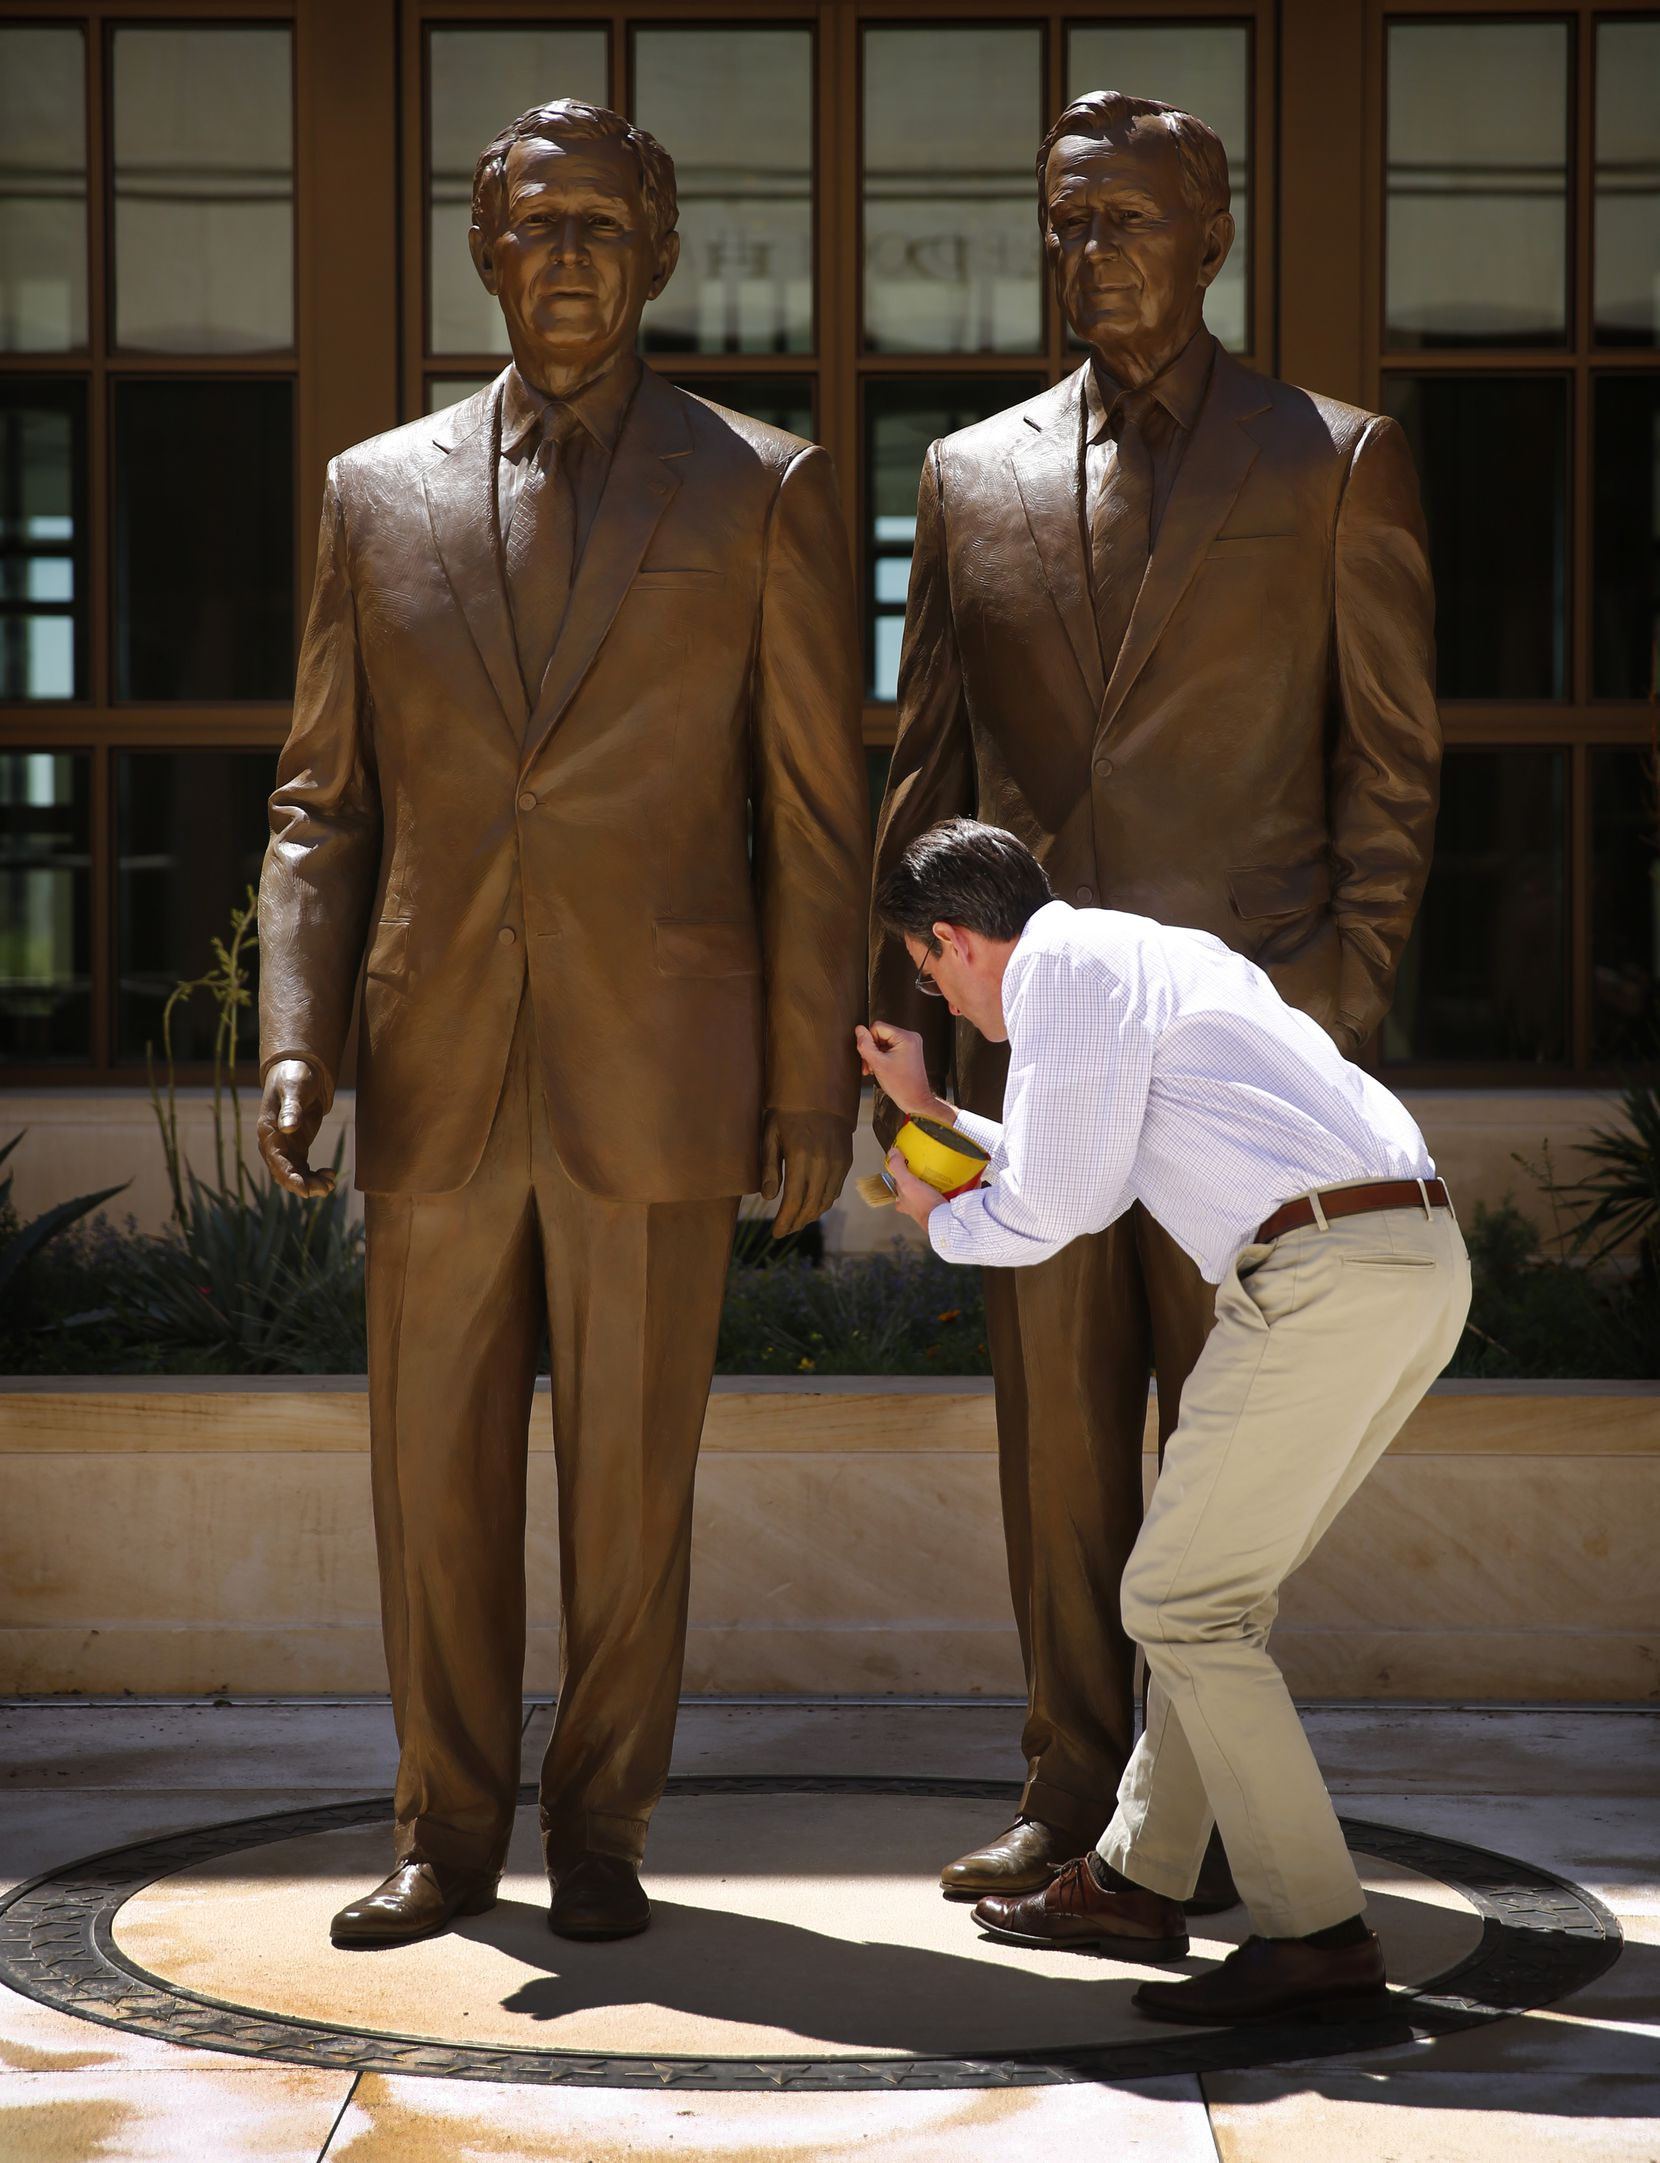 2013: Sculptor Chas Fagan of Charlotte applies wax to the 8-foot bronze statues he created of former Presidents George W. Bush (left) and George H.W. Bush in the courtyard of the George W. Bush Presidential Center in University Park.